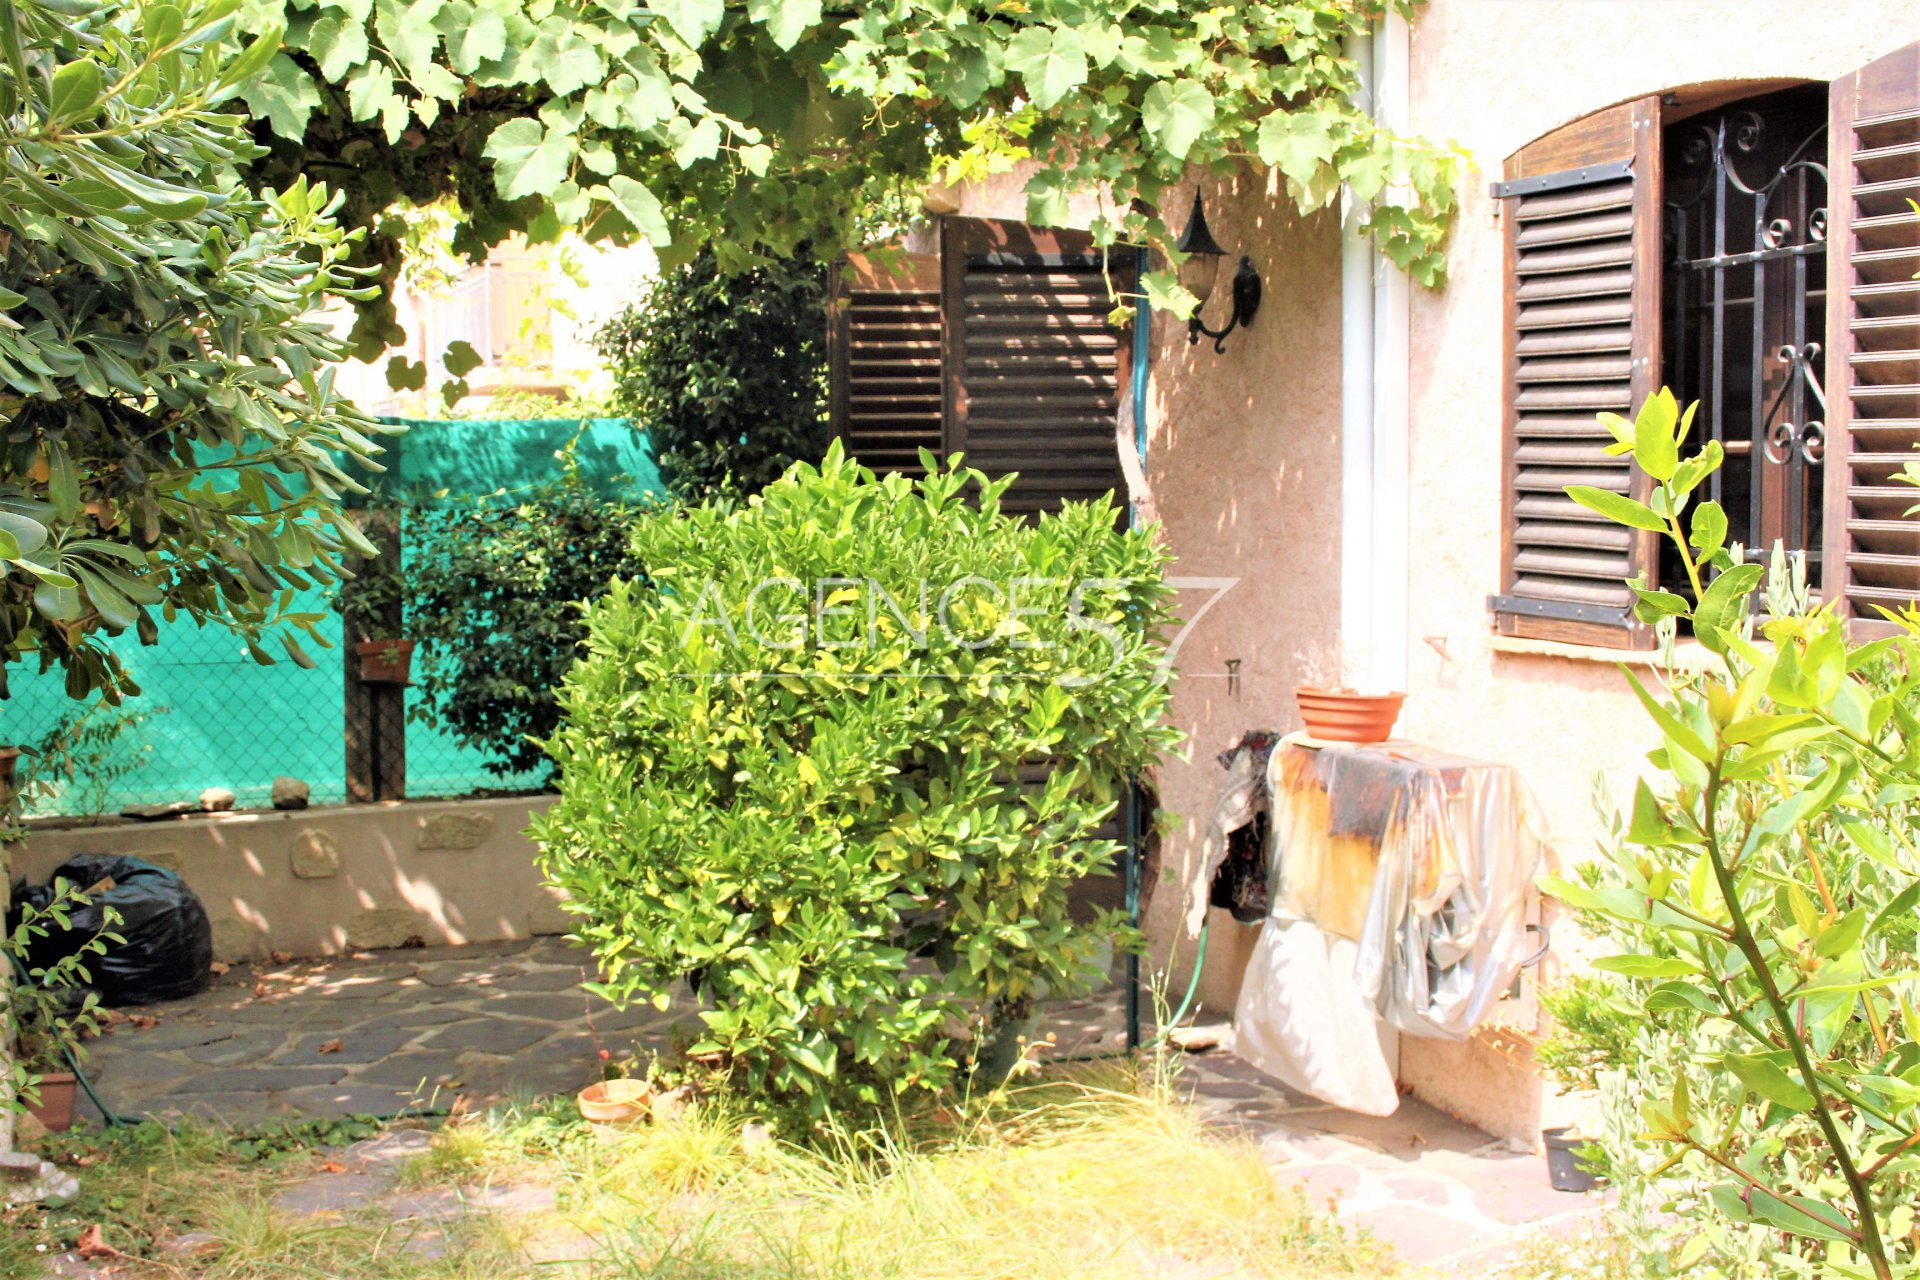 EXCLUSIVITE Grasse Sud villa 4 pièces, parking